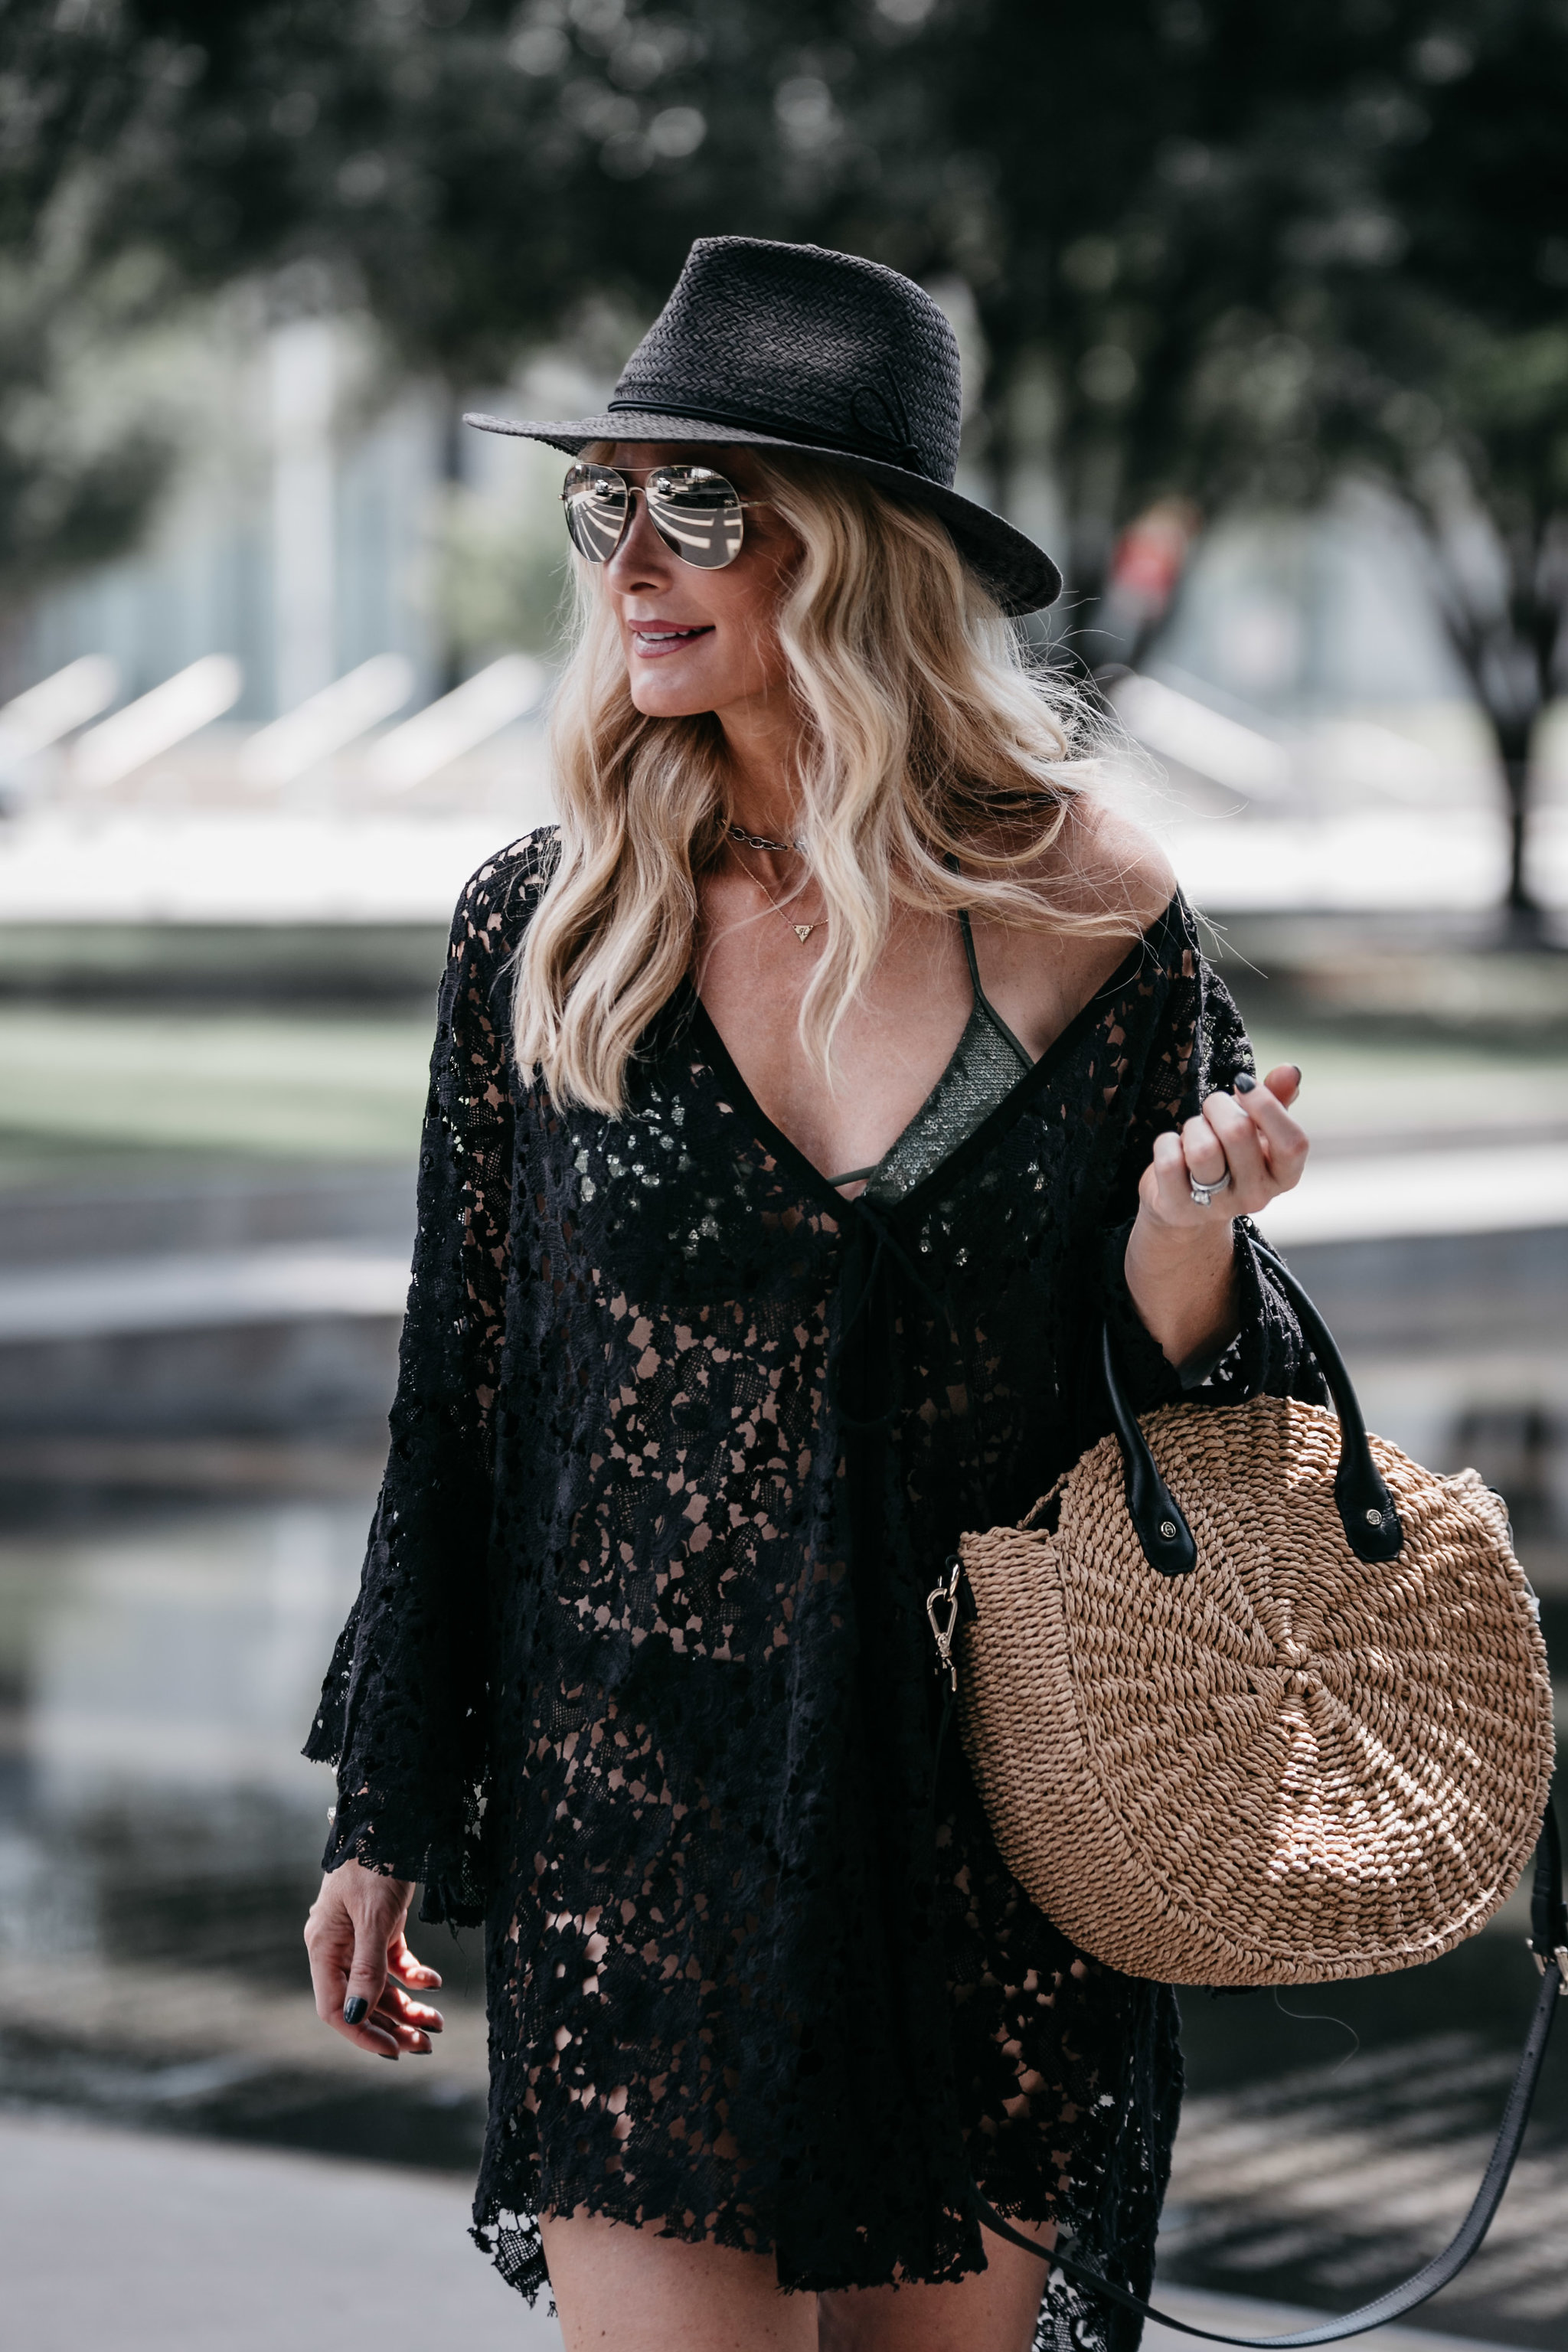 Black beach cover-up, black straw hat and woven bag